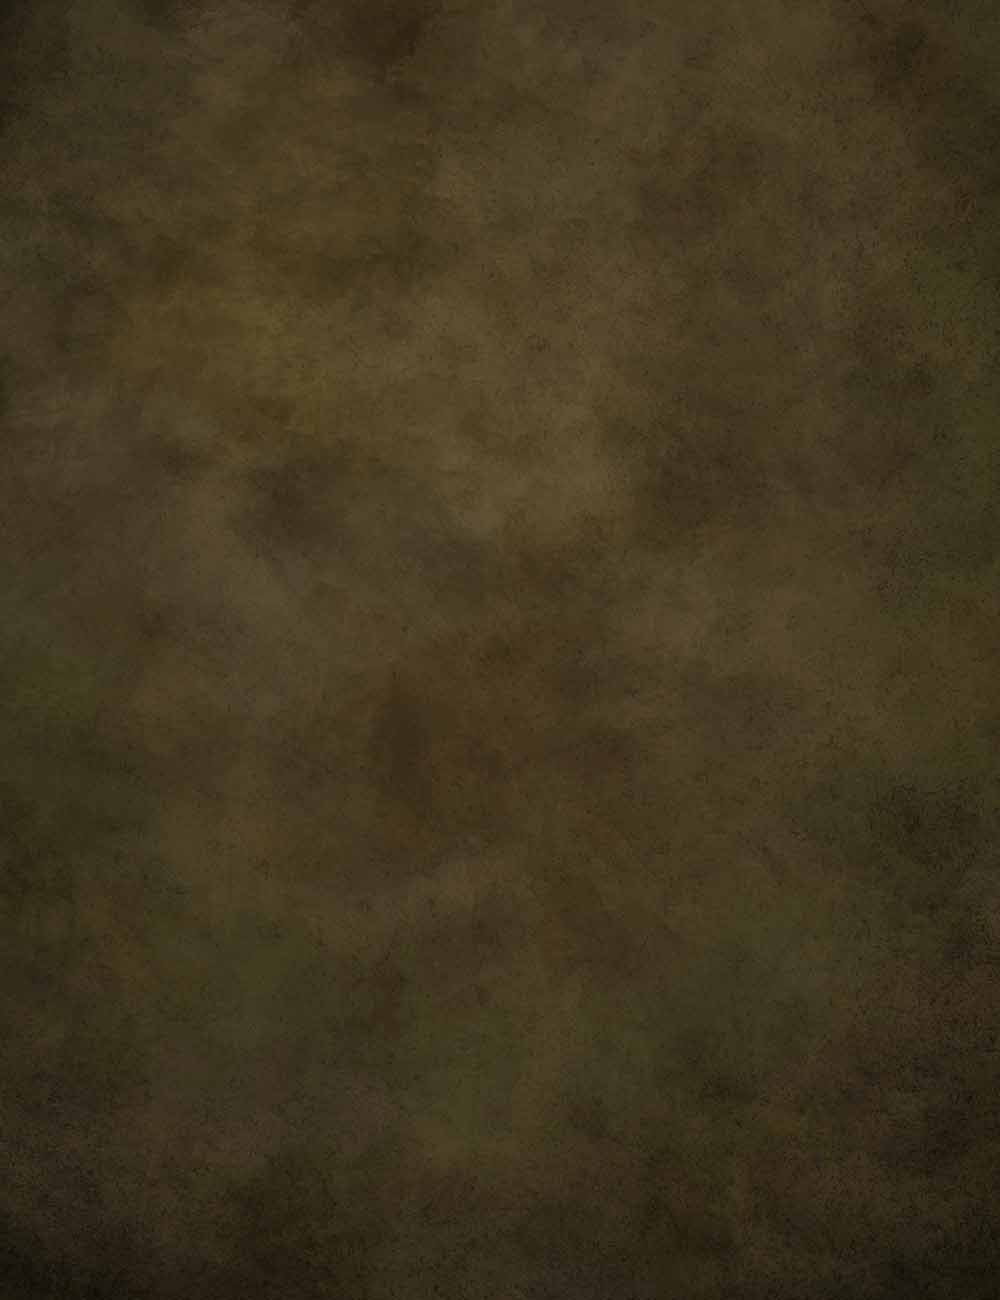 Abstract Dark Khaki Texture Backdrop For Photography - Shop Backdrop